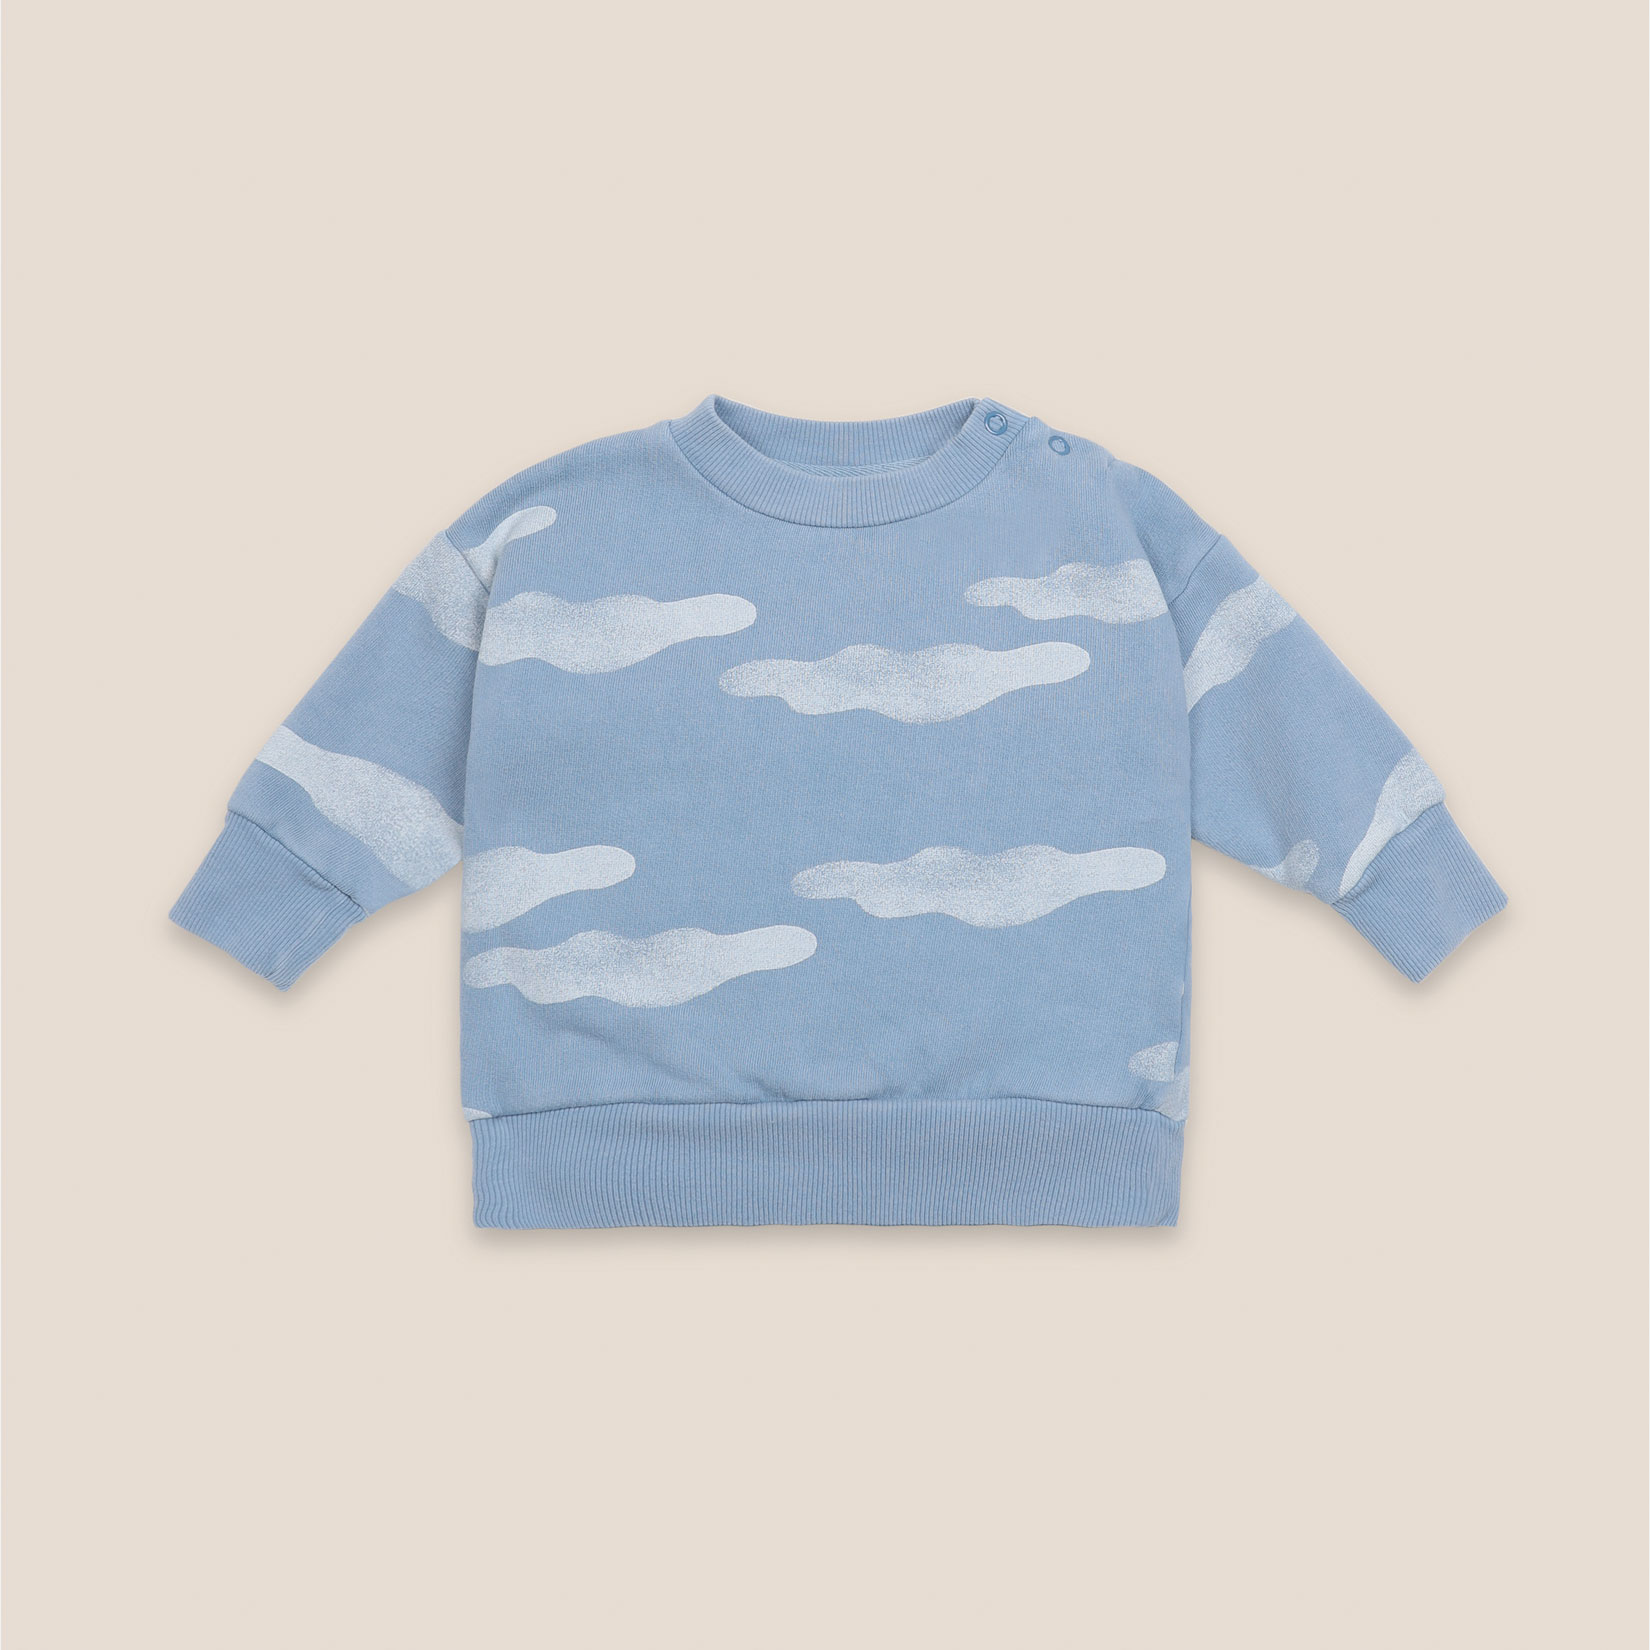 Bobo Choses - Baby Clouds All Over Sweatshirt